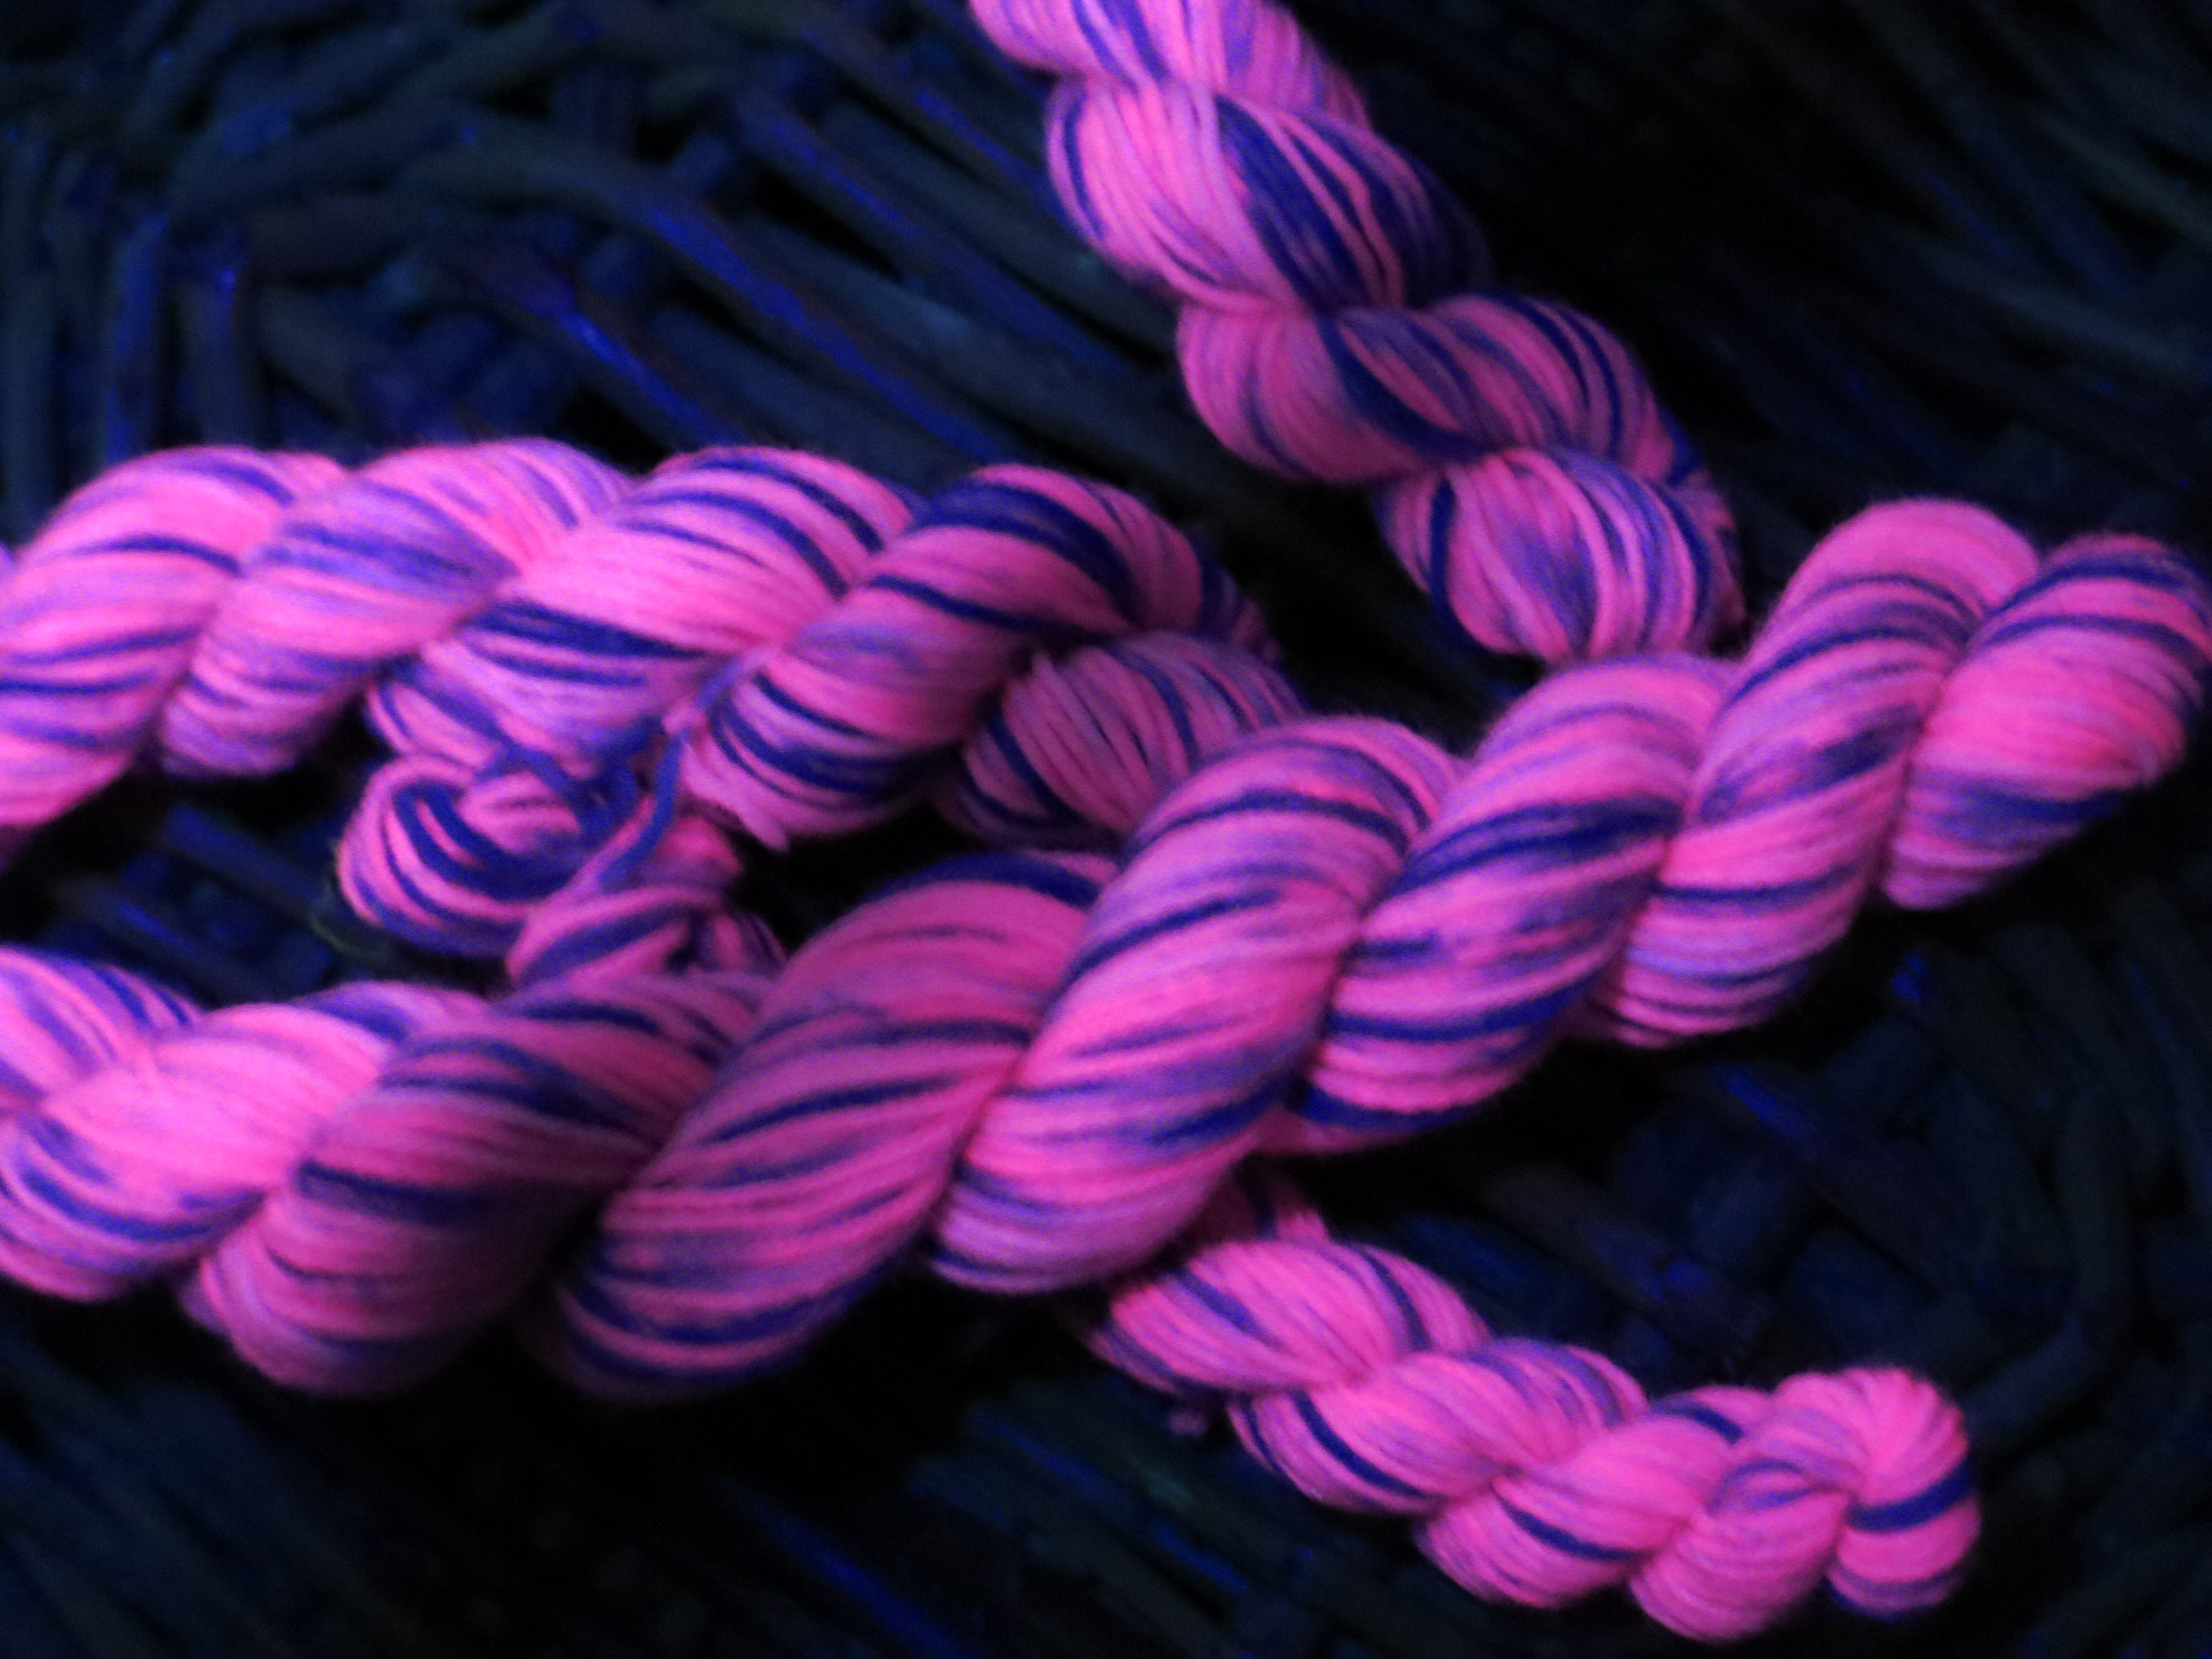 chesire cat hand dyed sock yarn under uv black light